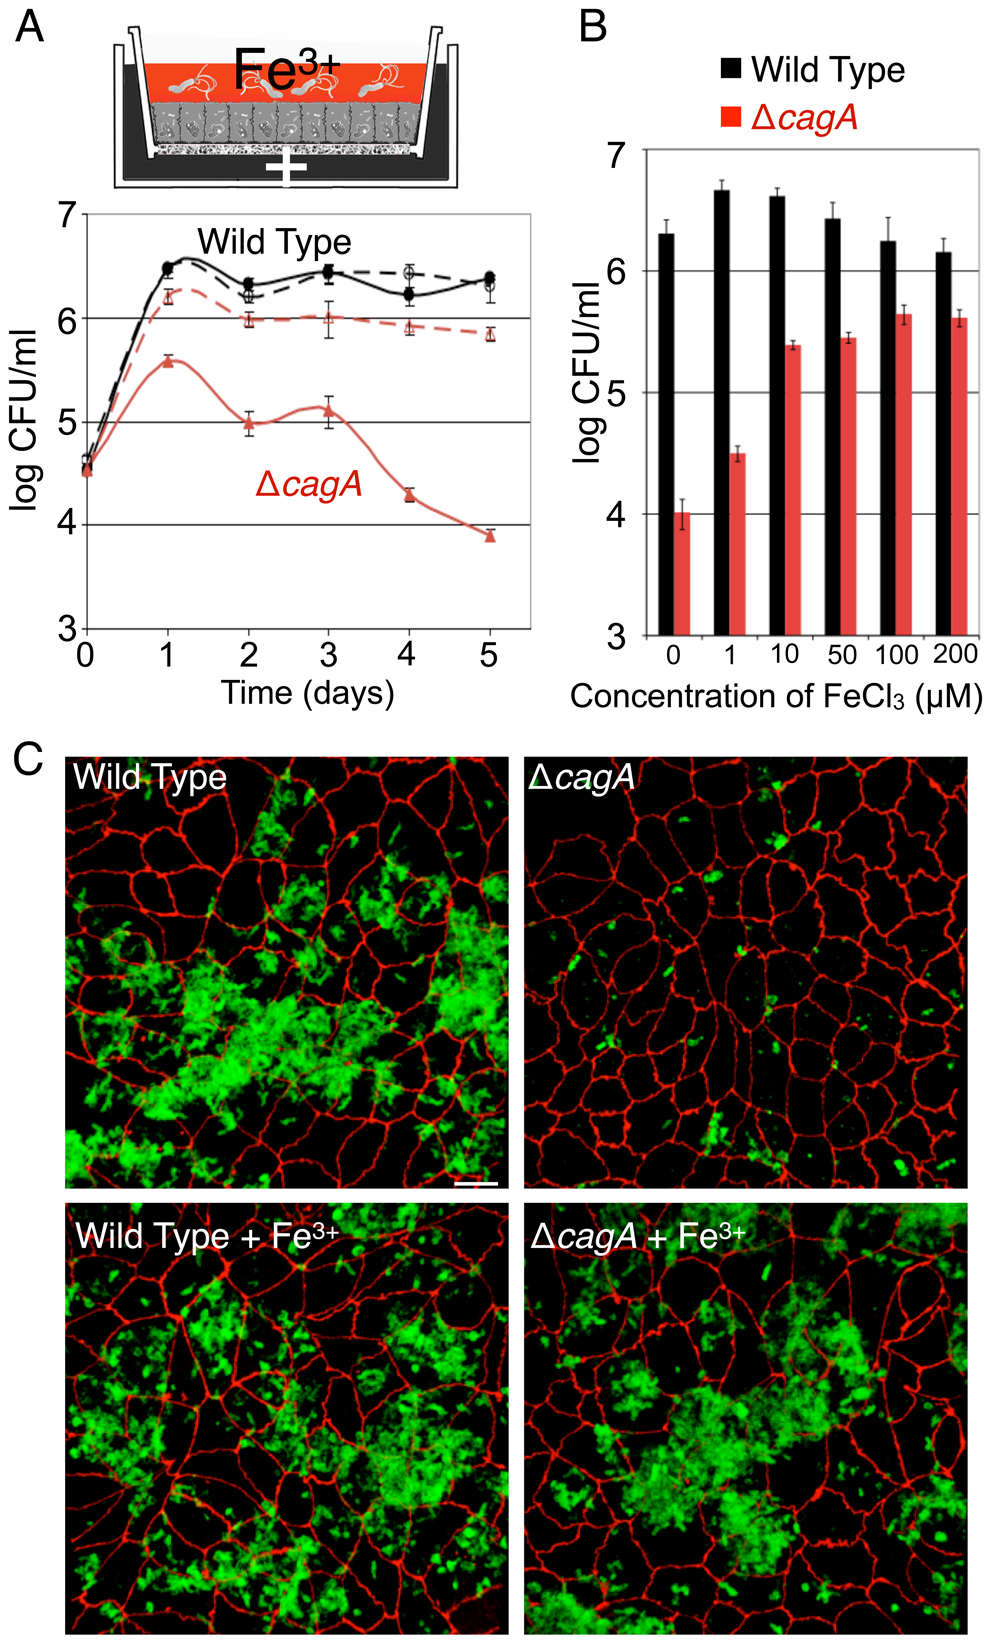 <i>Hp</i> acquires iron from host cells during colonization of the polarized epithelium.